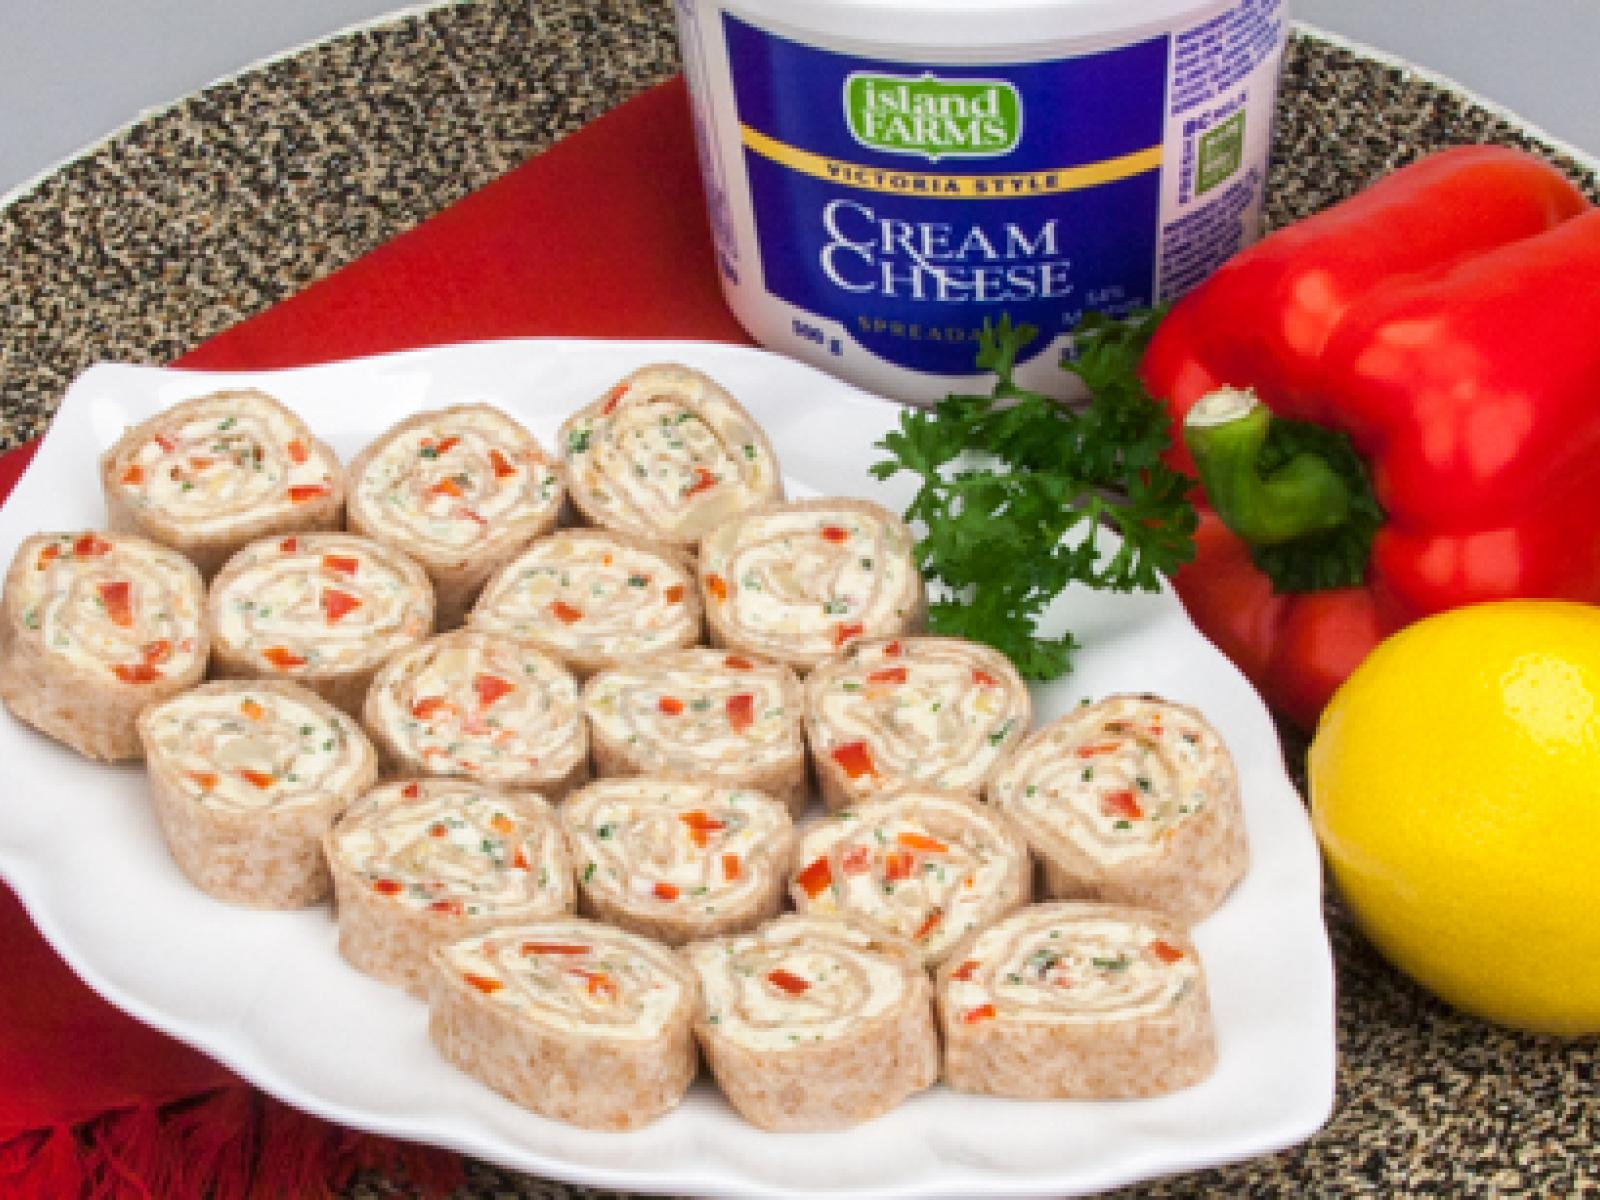 Cream-Cheesy Roll-ups recipe